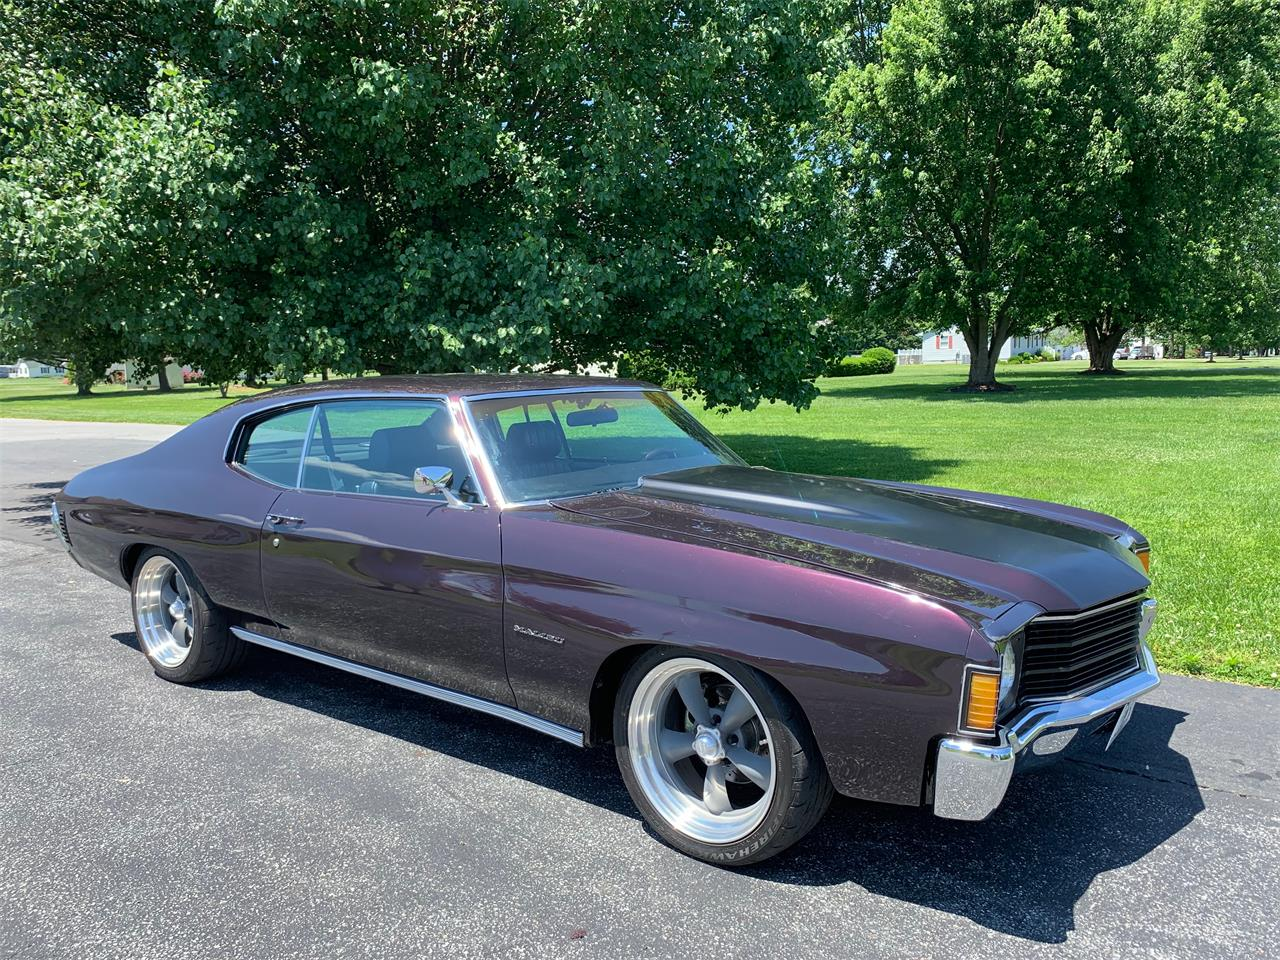 Large Picture of 1972 Chevrolet Chevelle Malibu located in Ridgely Maryland - $27,500.00 - QK1N